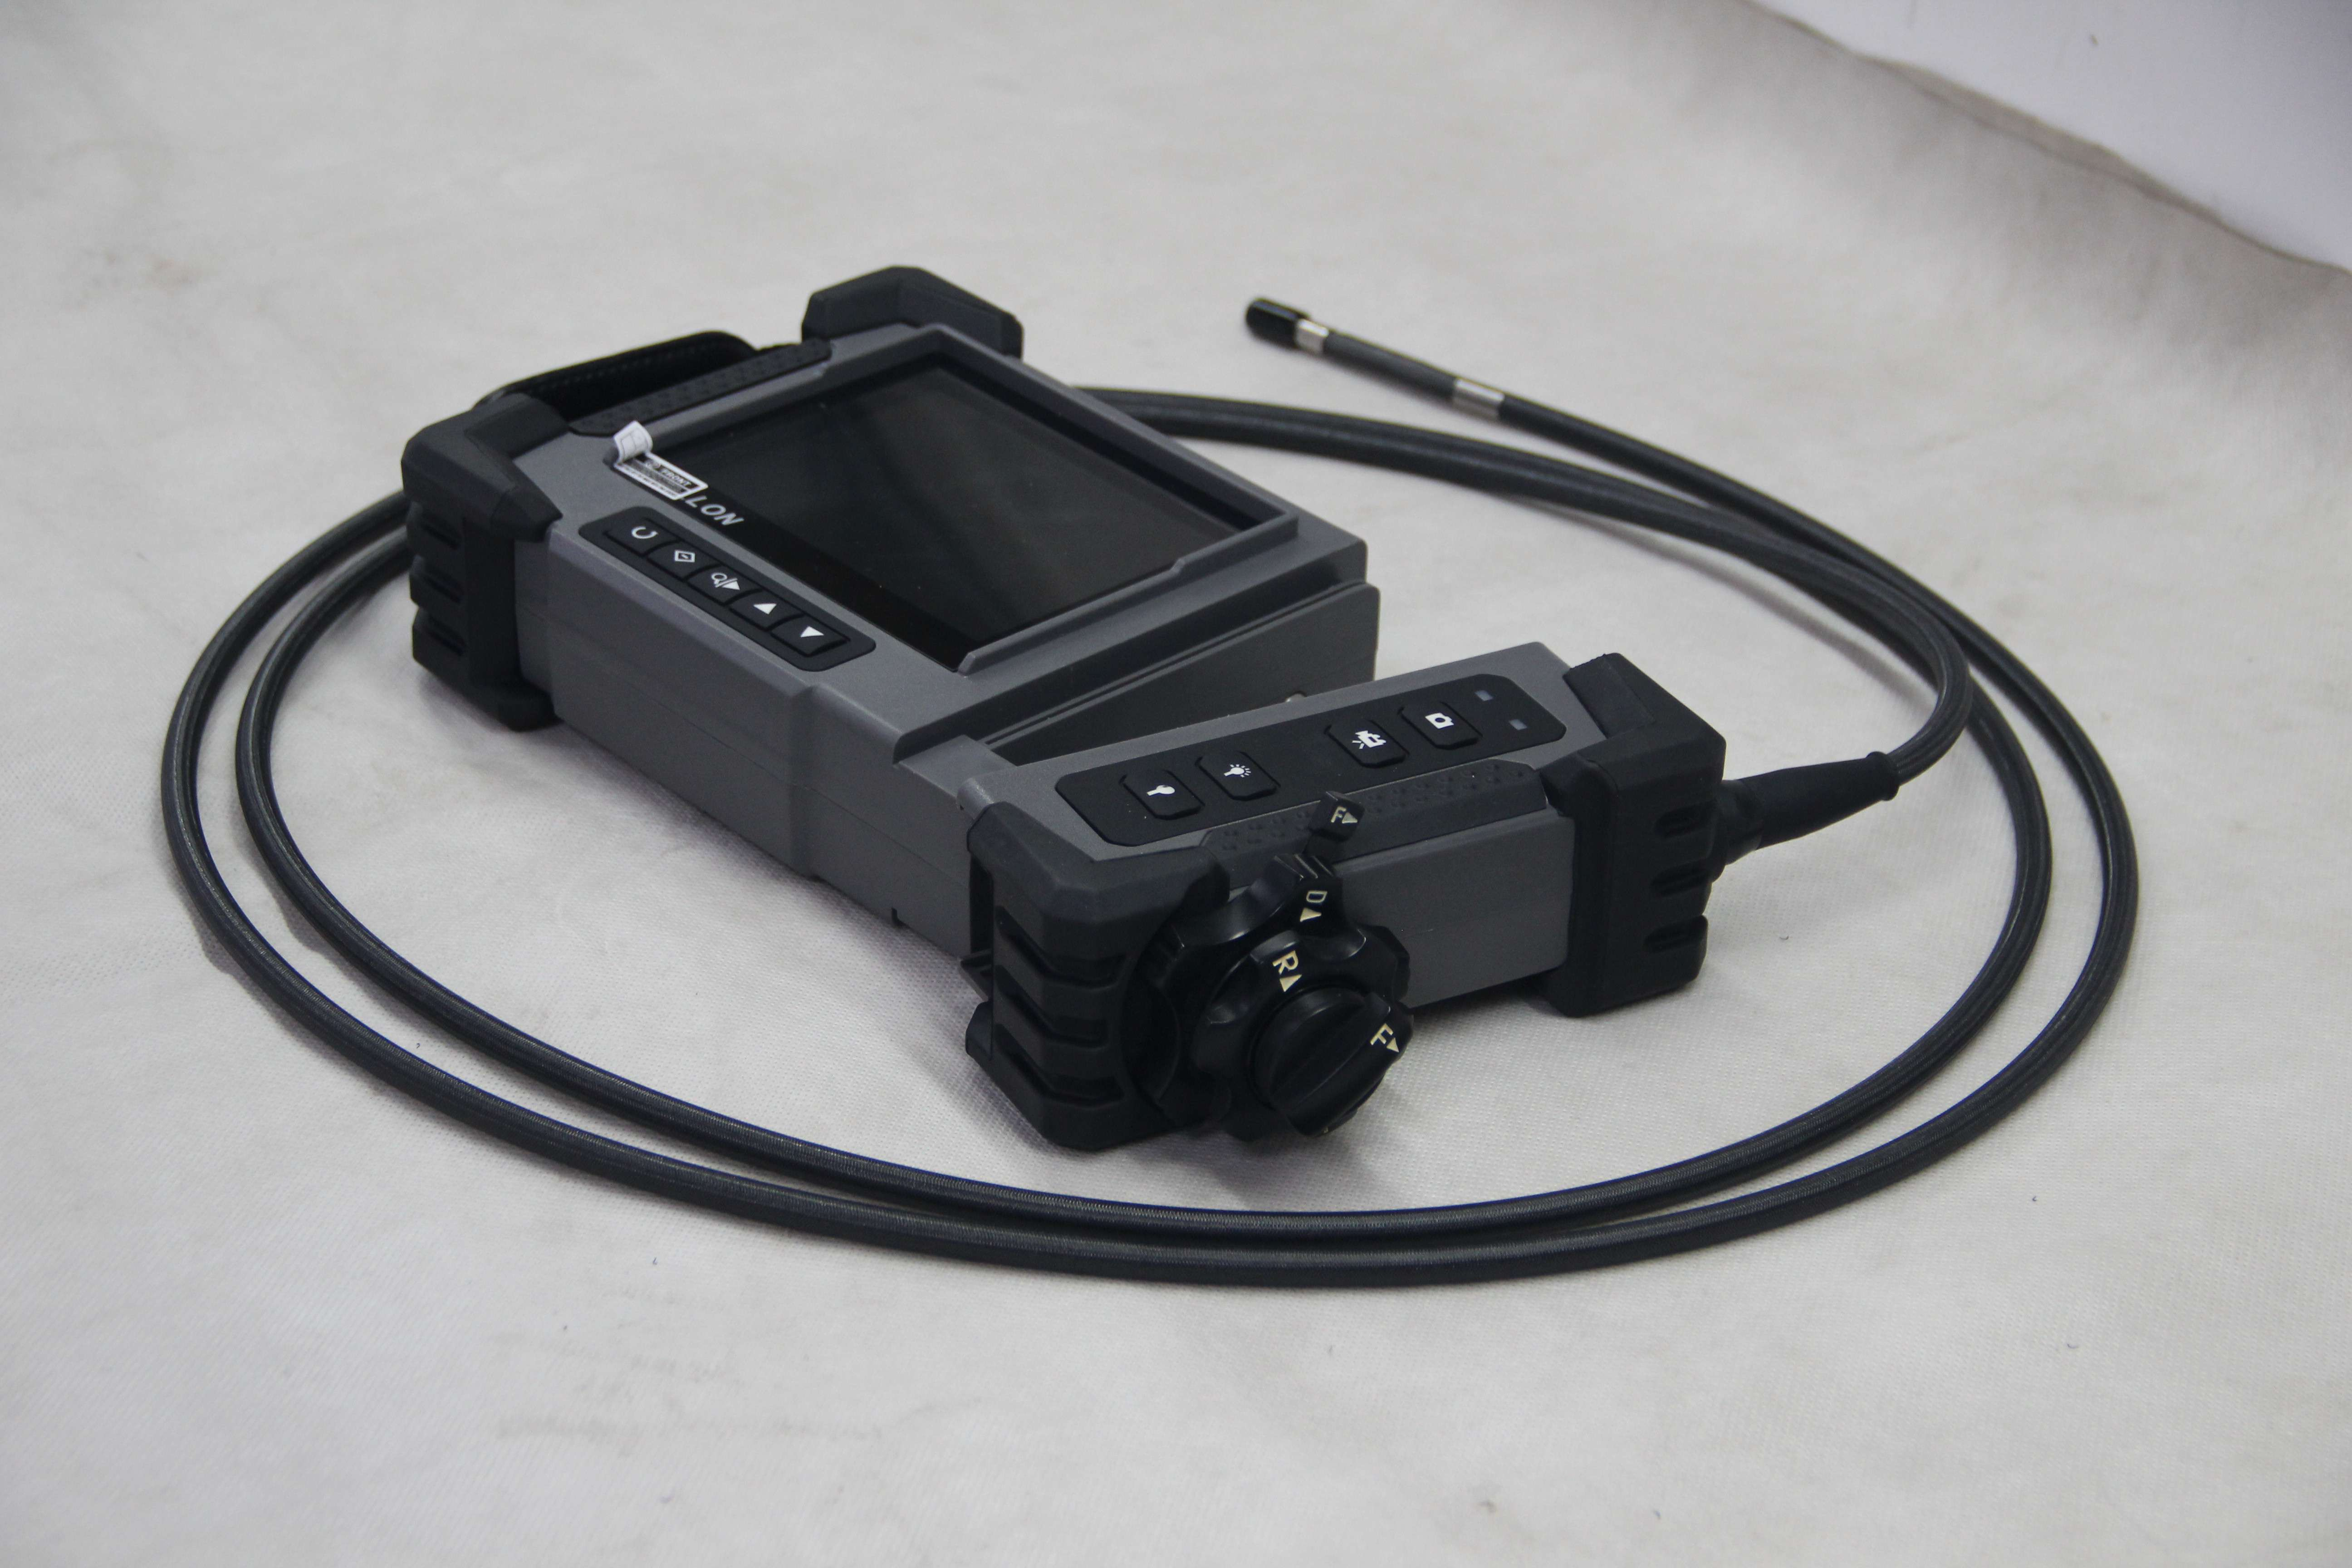 Blockage inspection camera